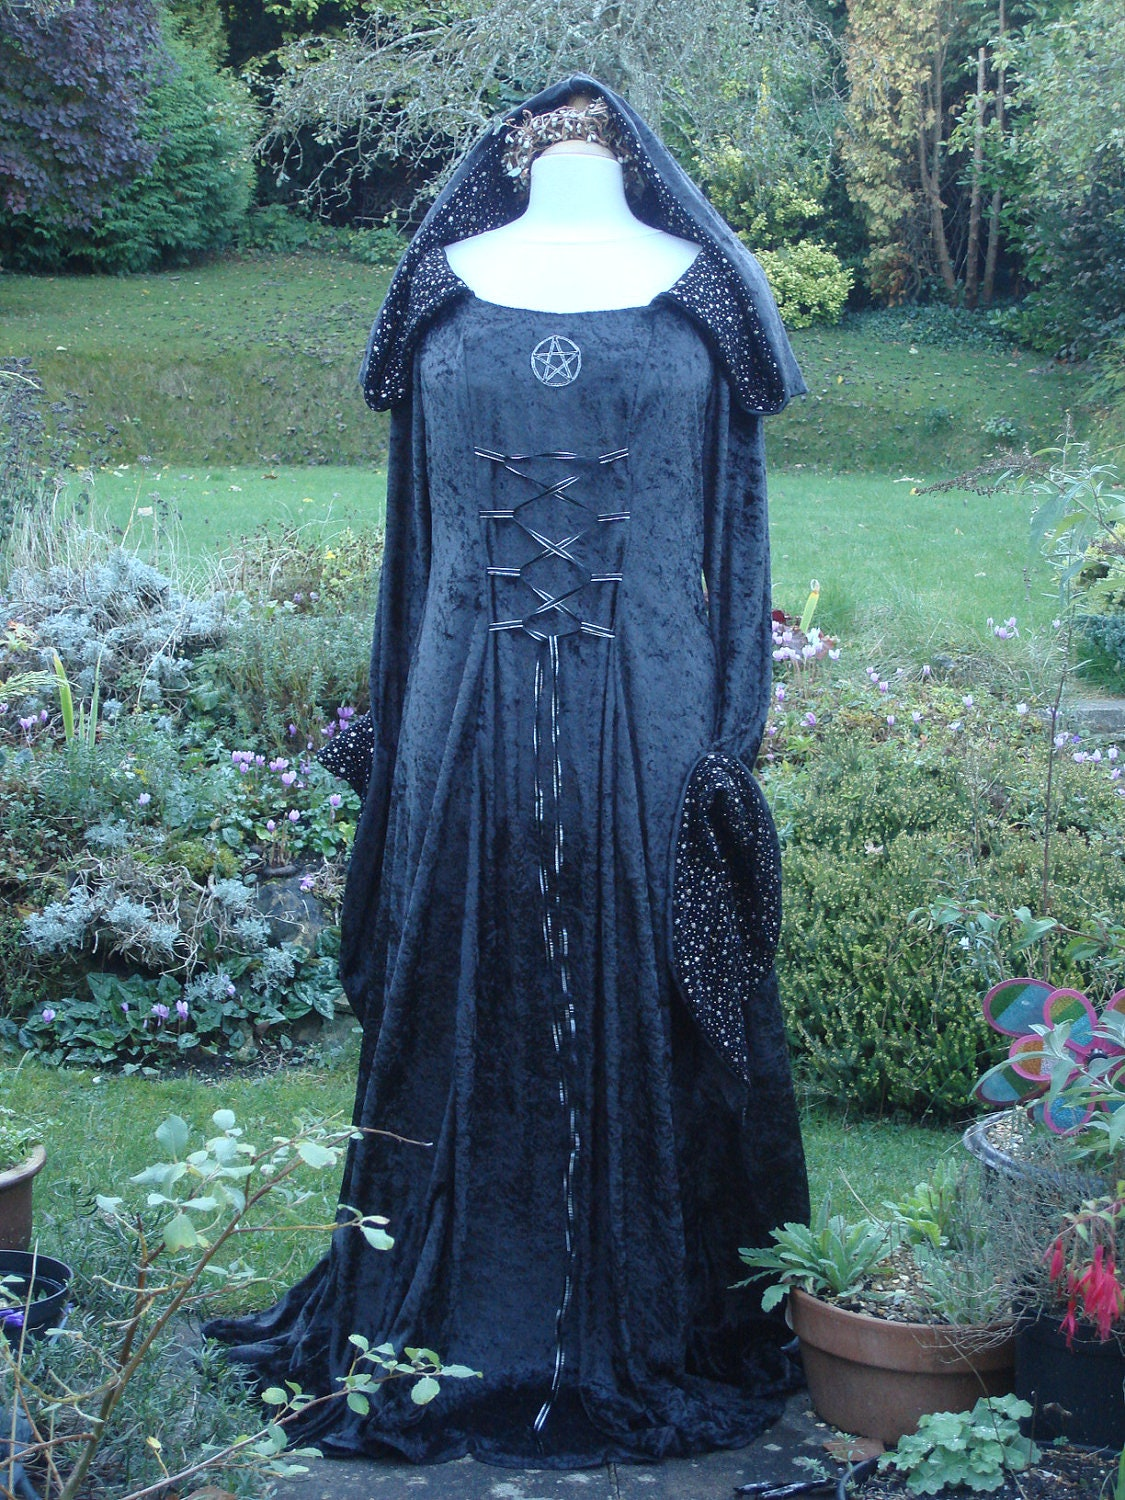 Bespoke hooded goth witch pagan black medieval wedding gown